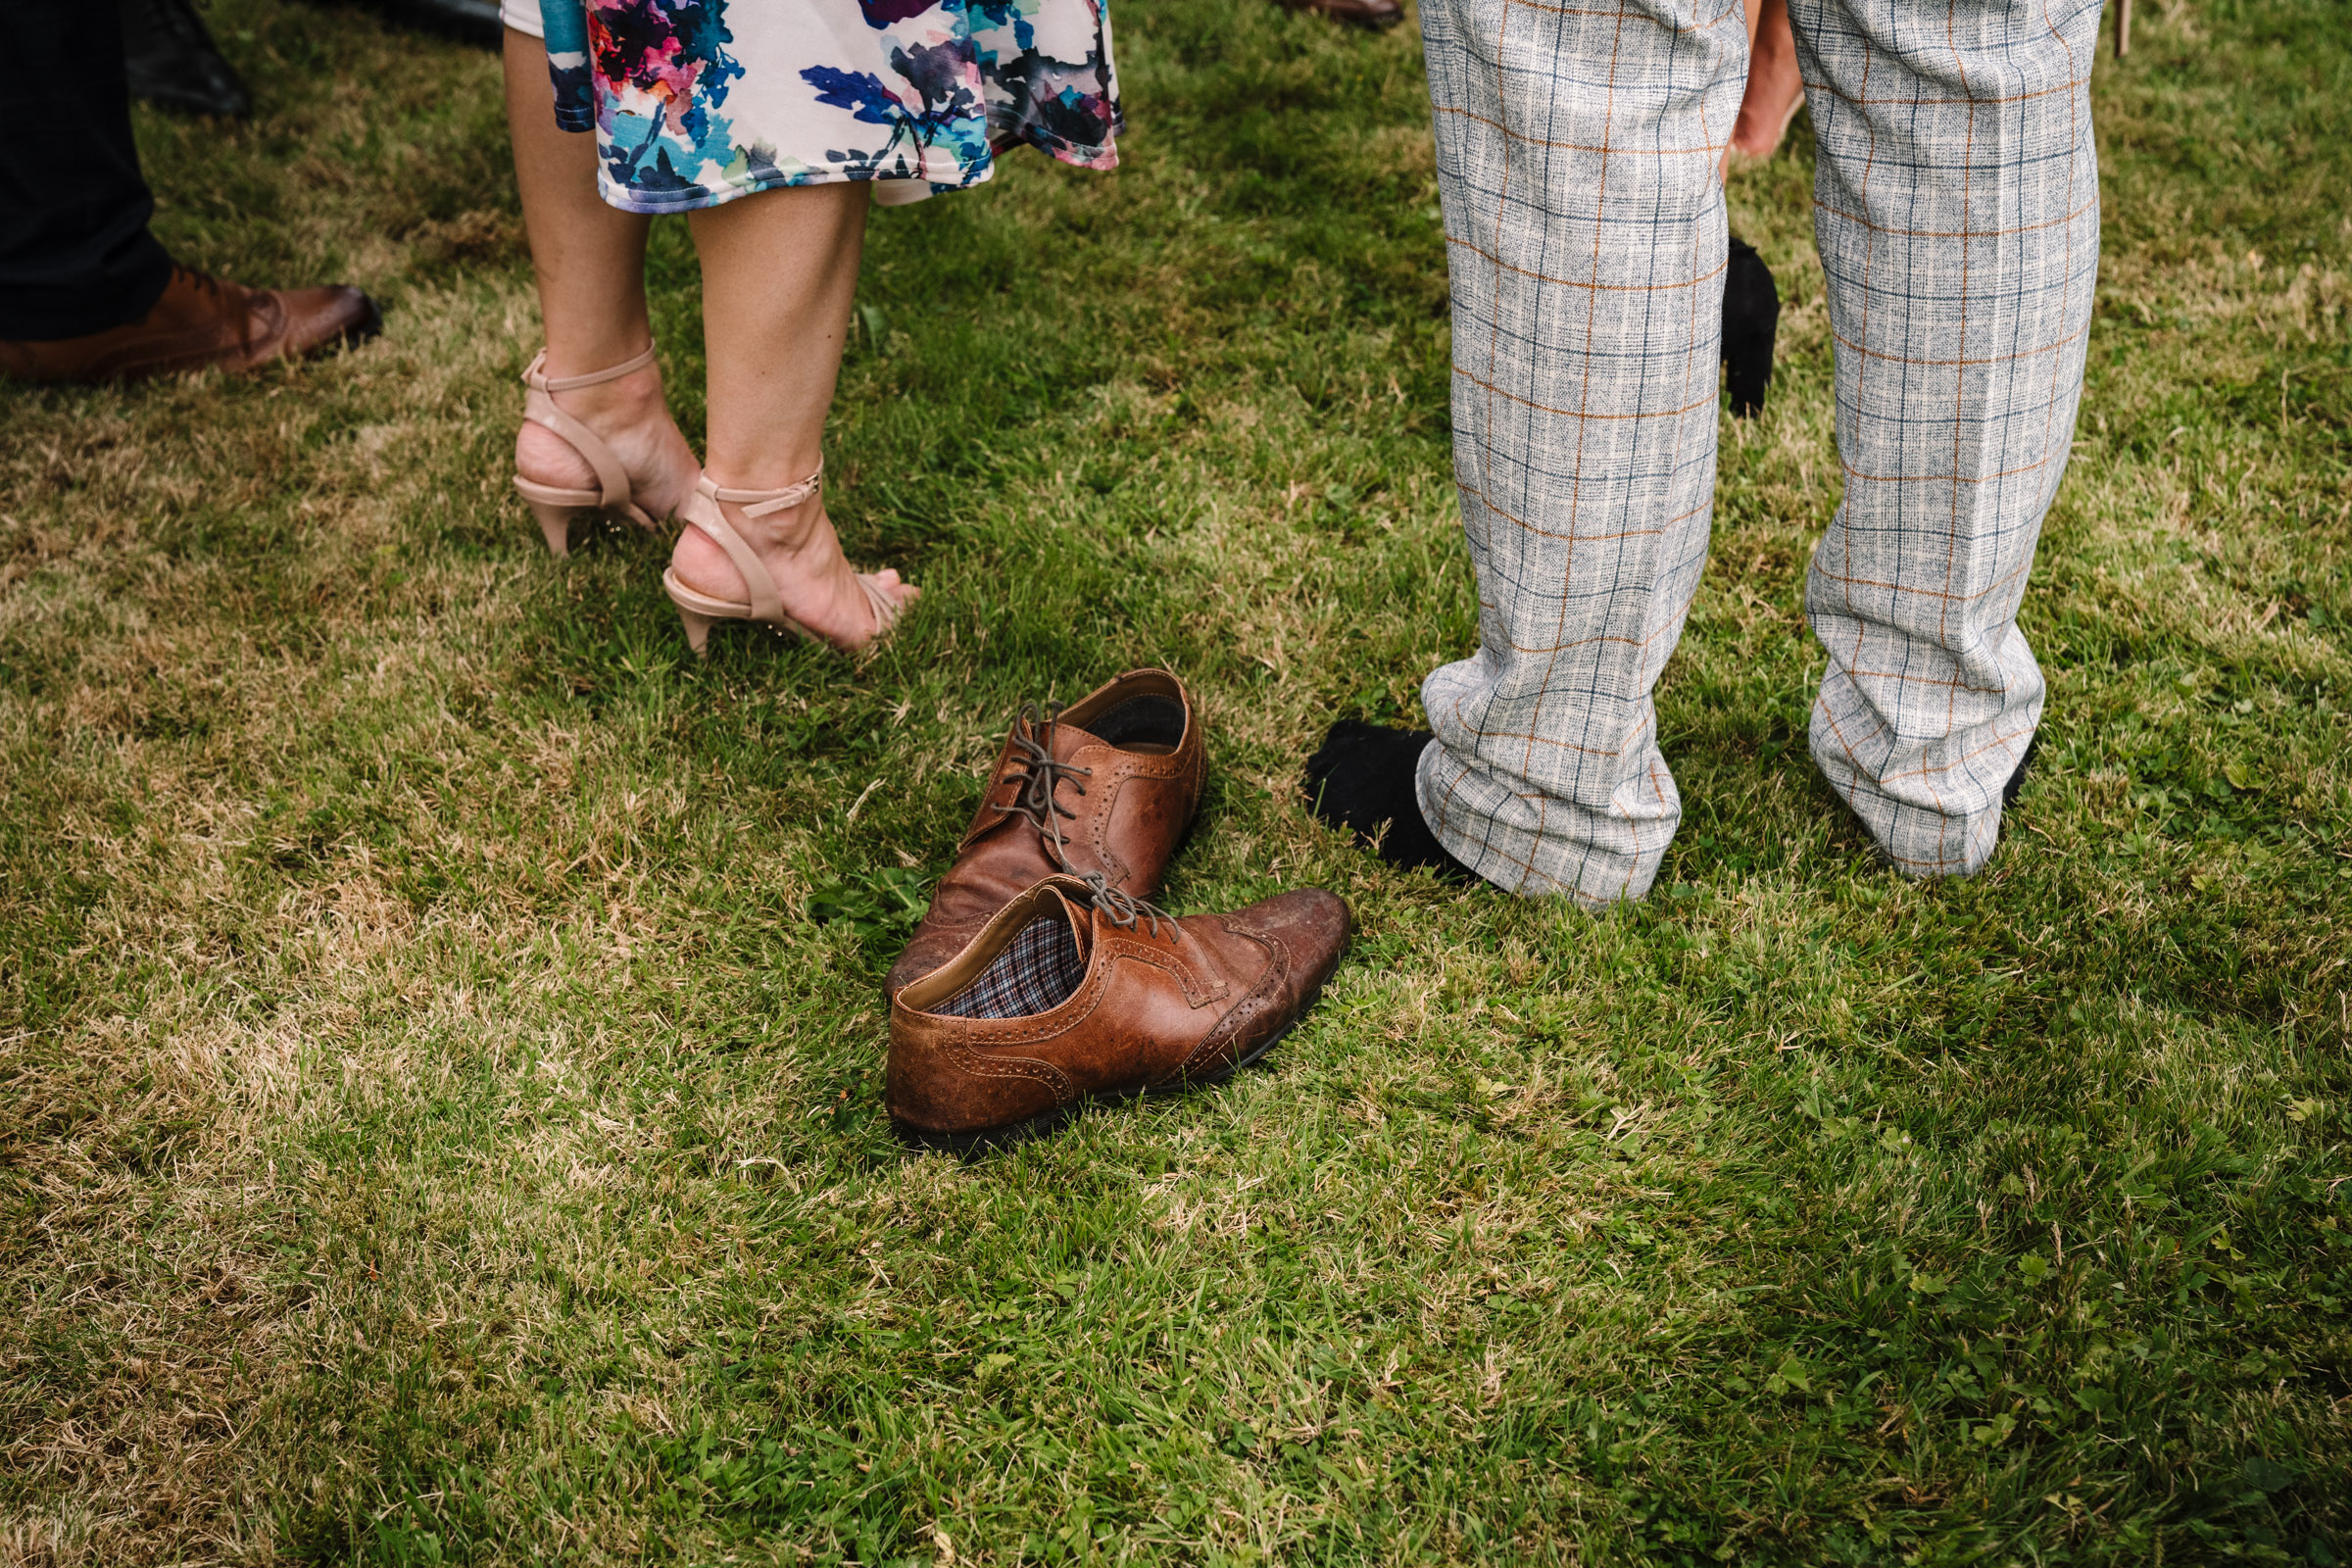 shoes on grass, taken off at wedding reception